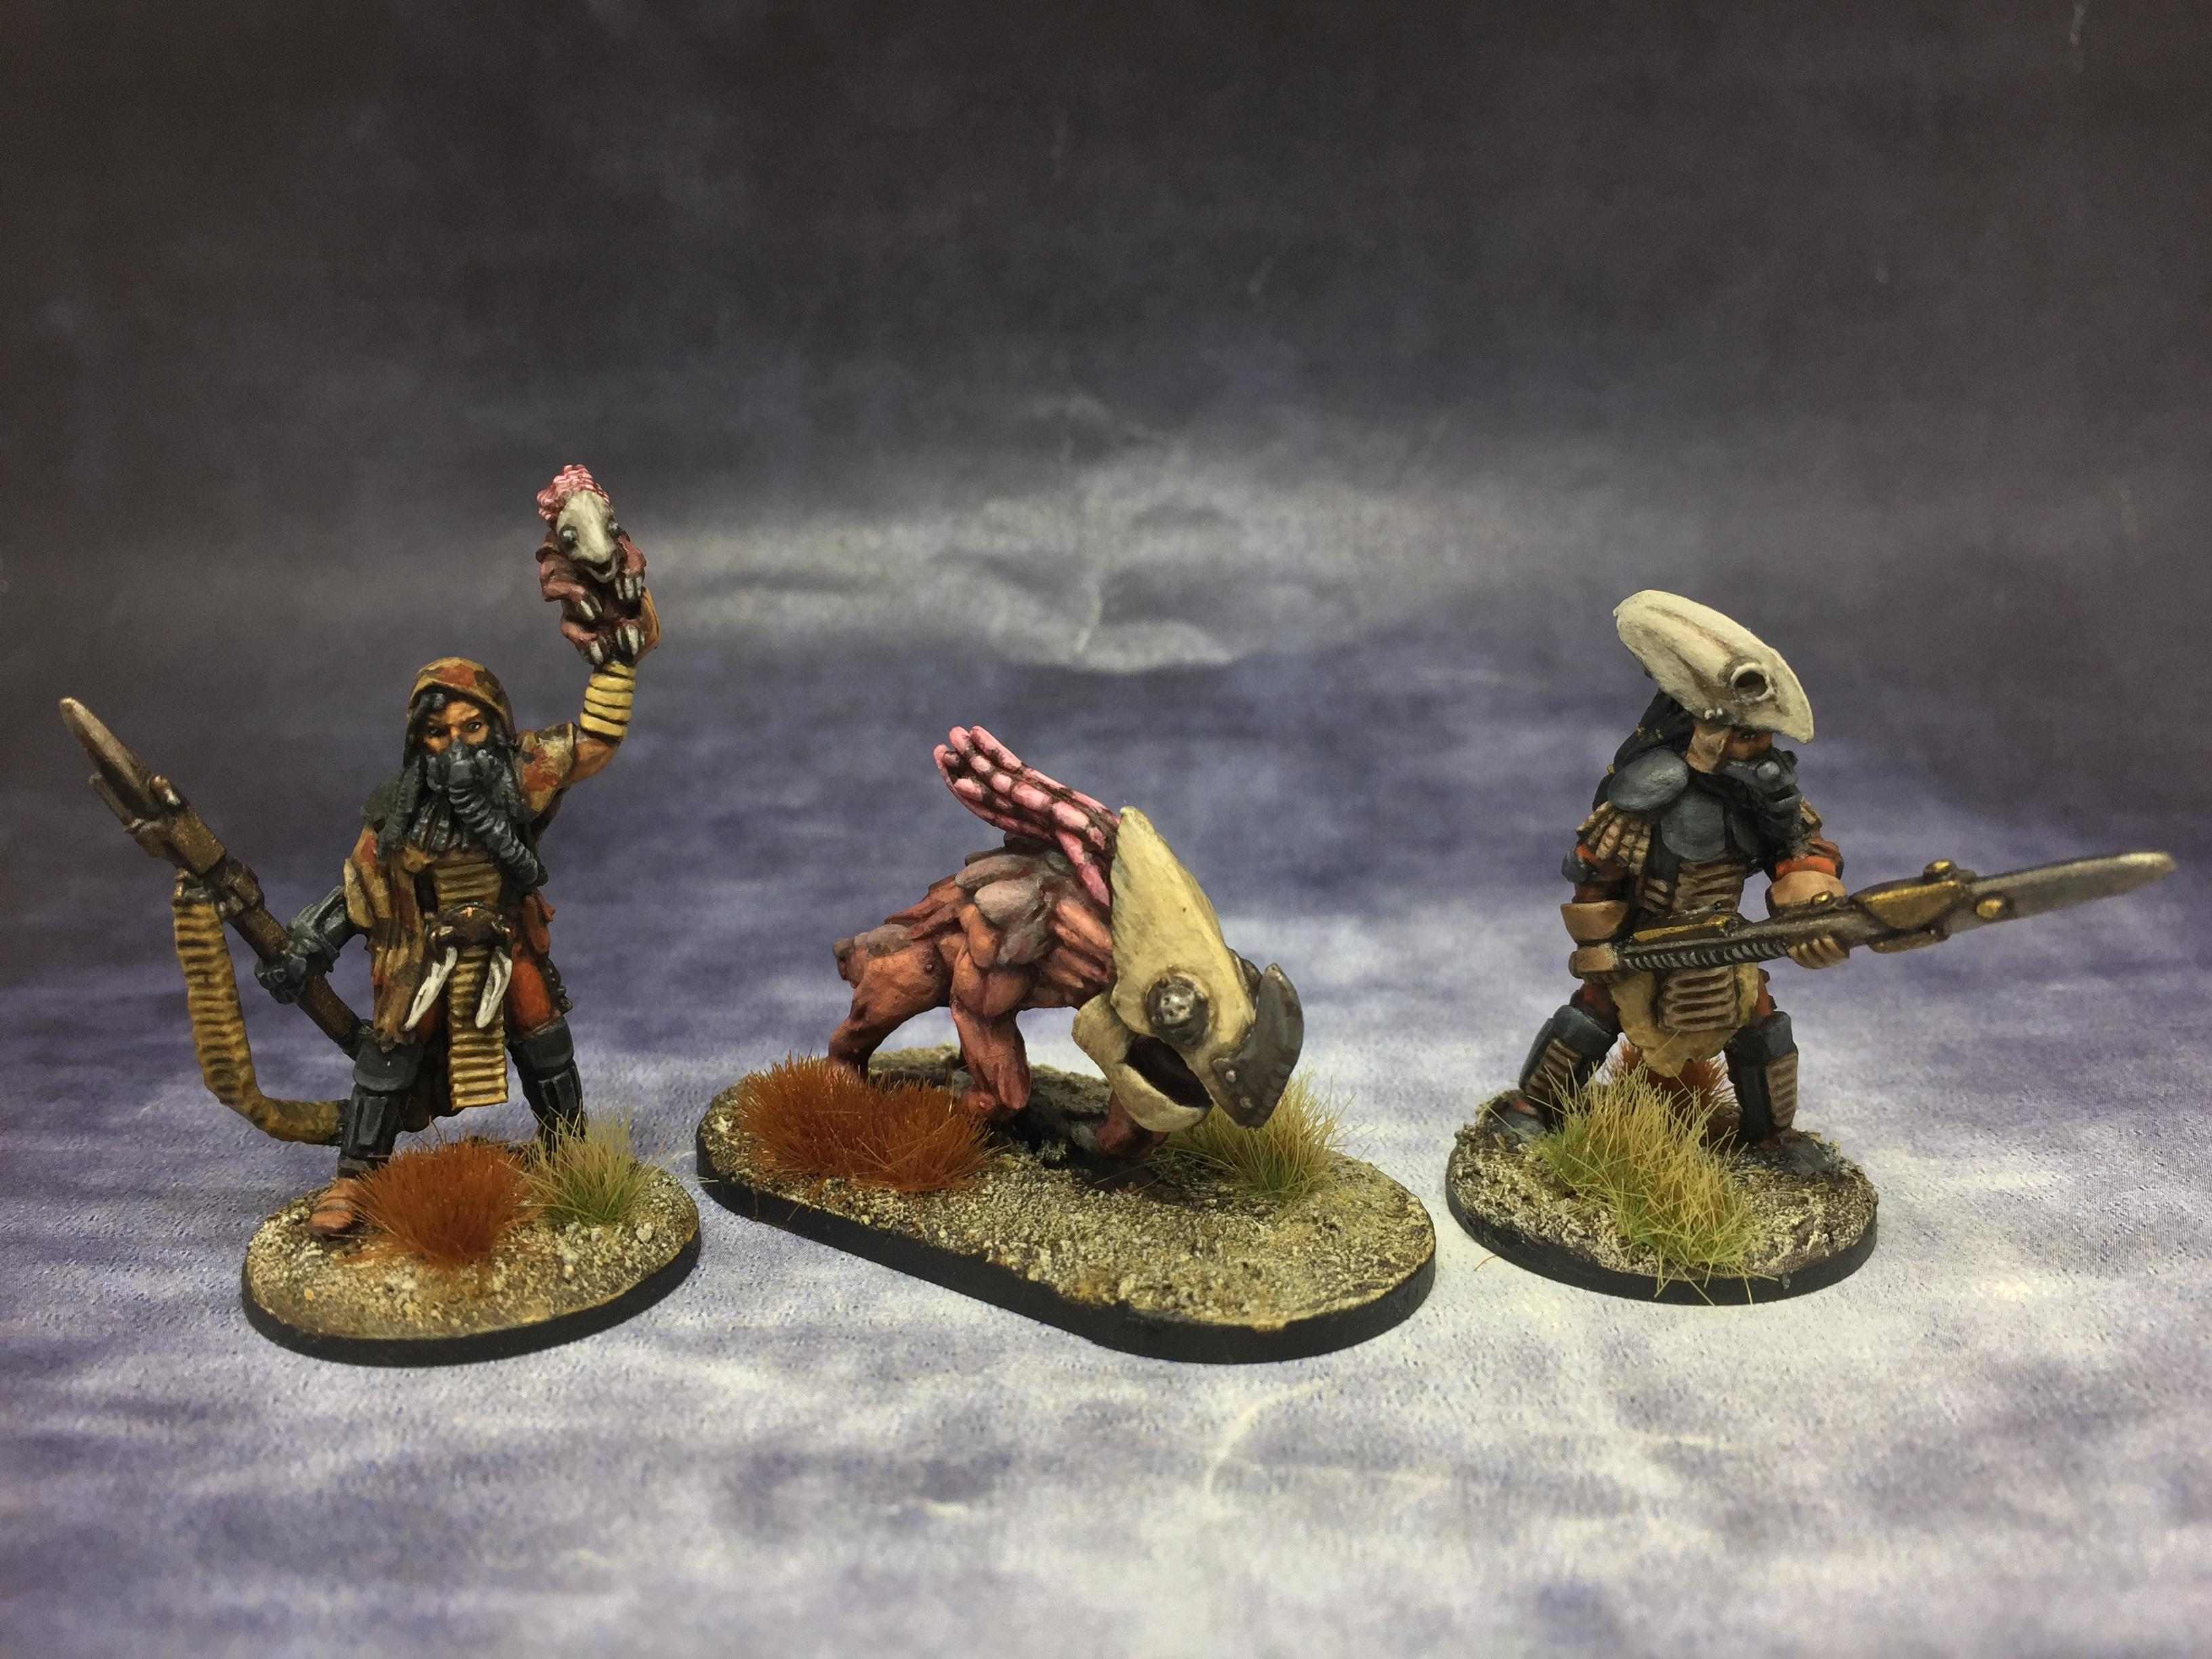 Bad Squiddo, Beast, Ghosts Of Gaia, Handler, June 2020, Postapoc, Postapocalyptic, Wrenchmouth